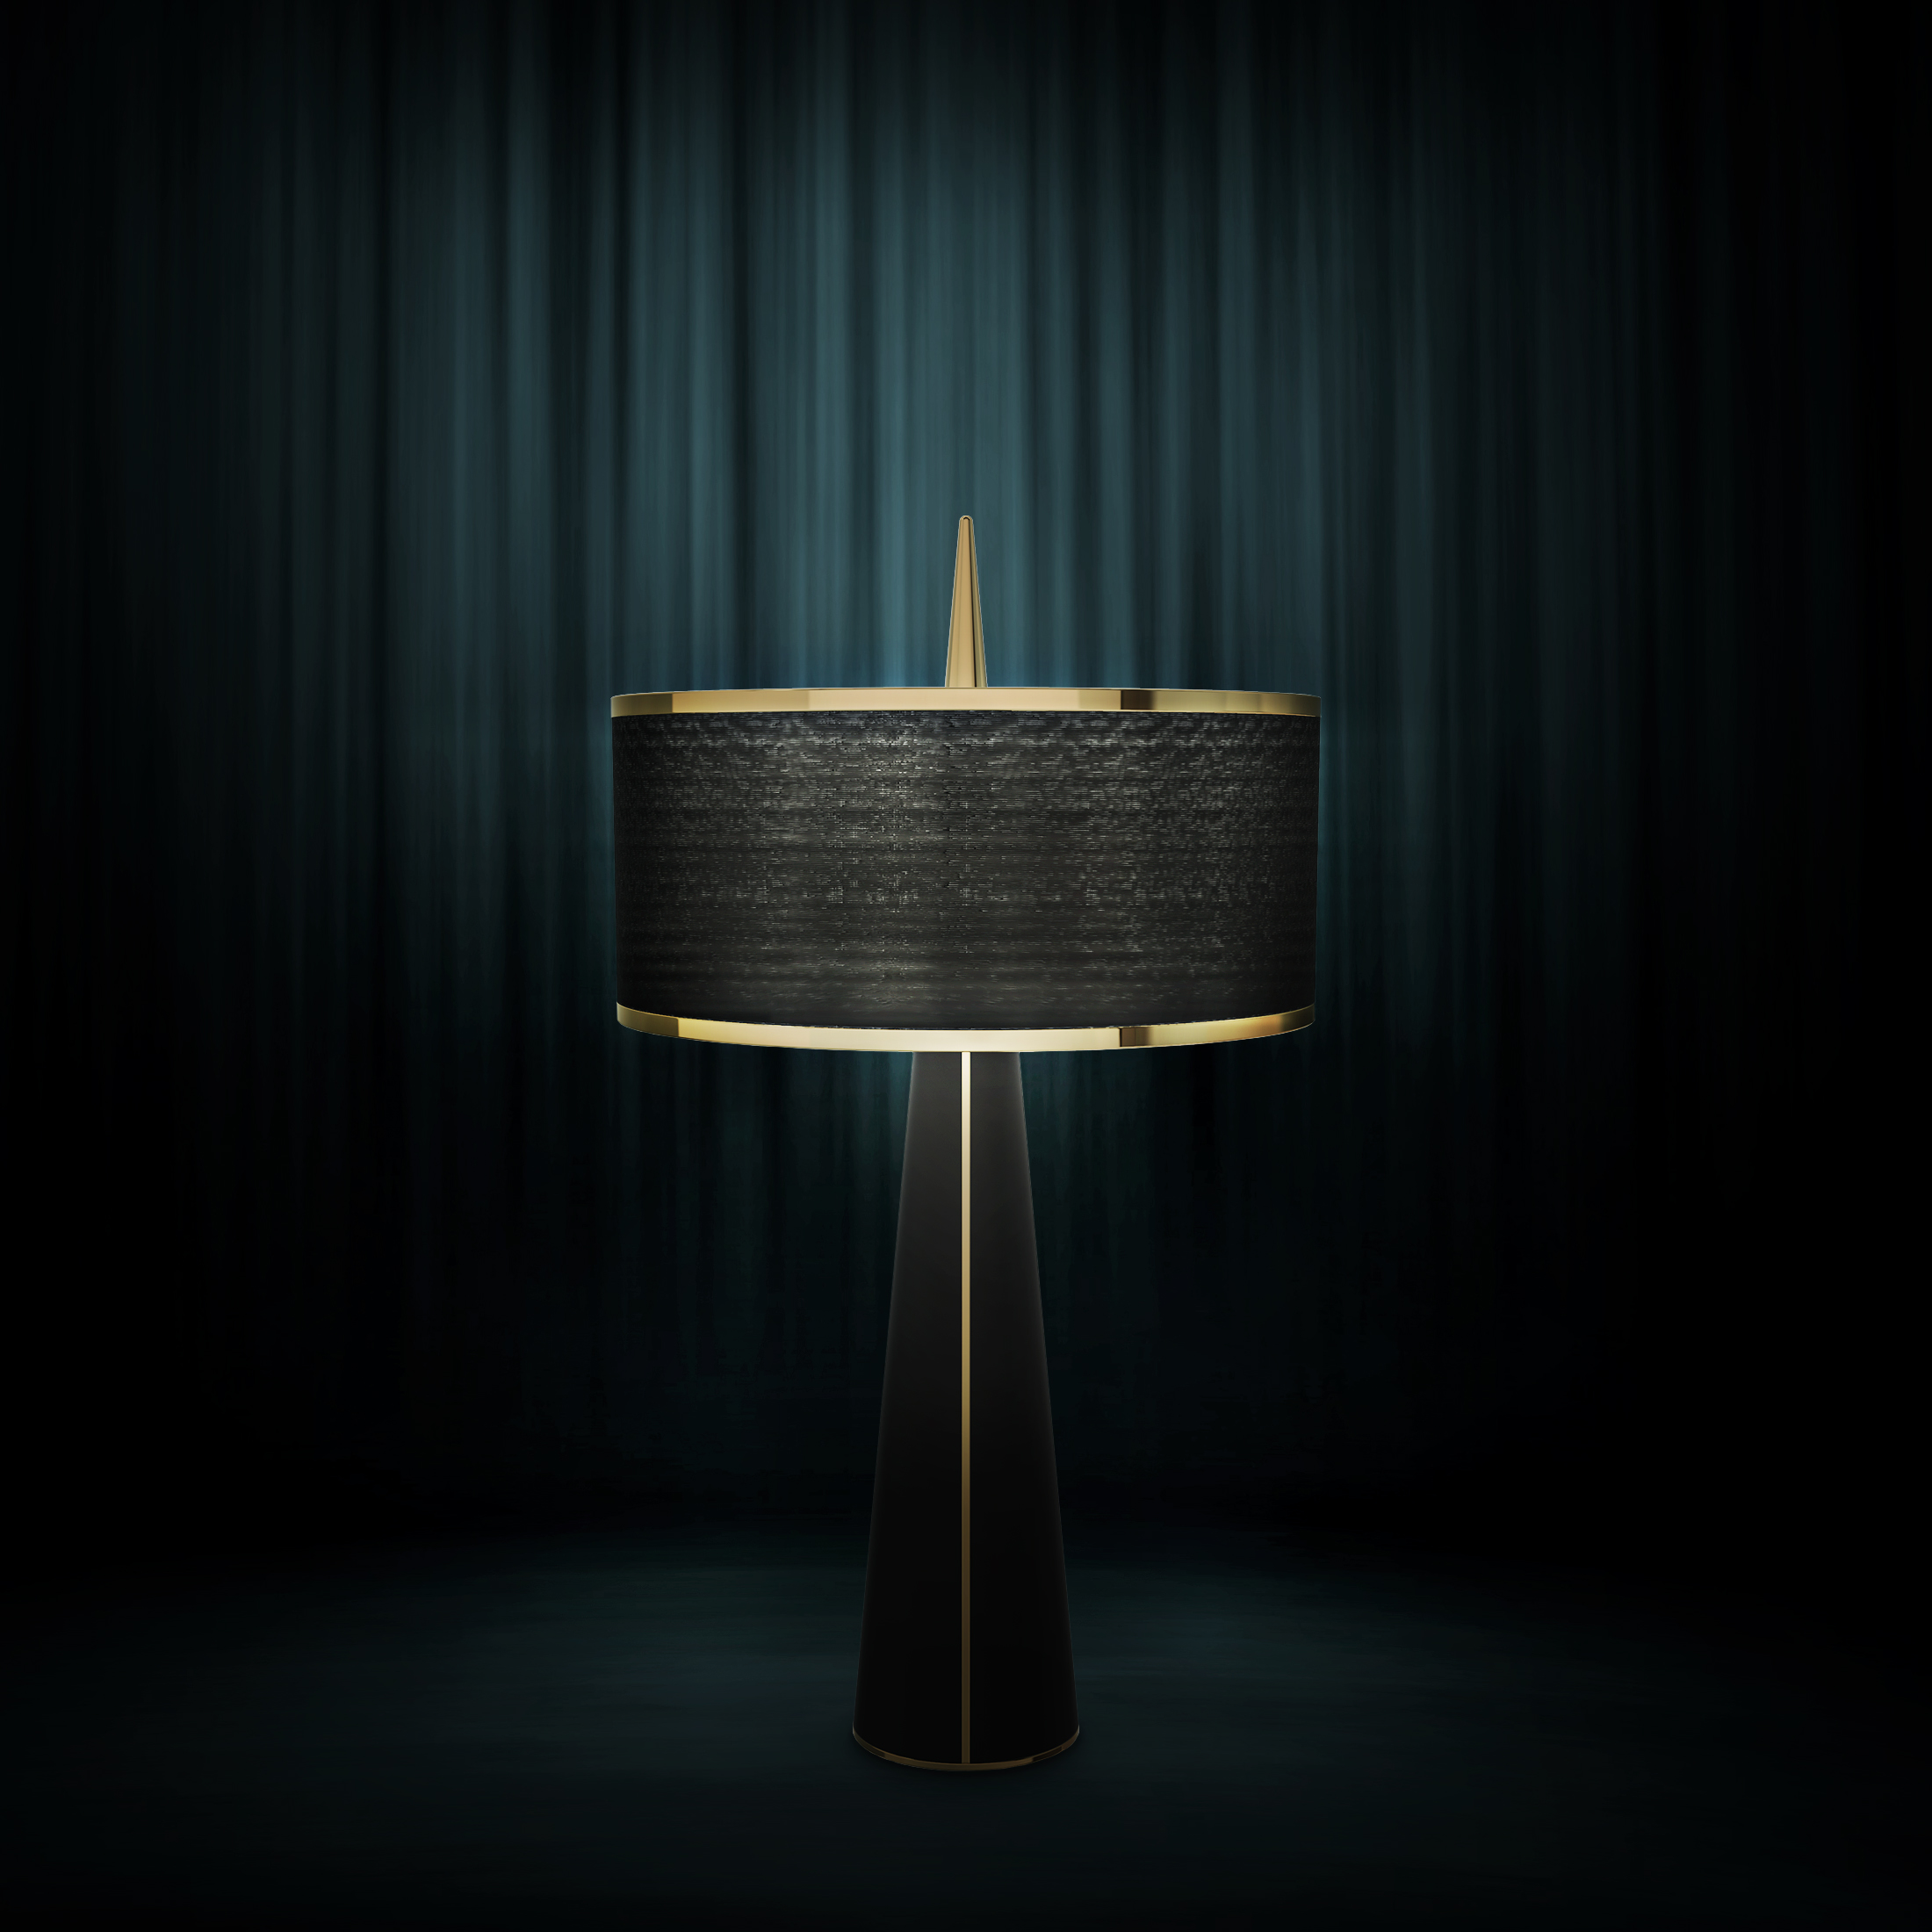 Luxury Furniture: Needle Table Lamp brain twister Brain Twister – Meet this Kazakhstan Design Studio needle brain twister Brain Twister – Meet this Kazakhstan Design Studio needle